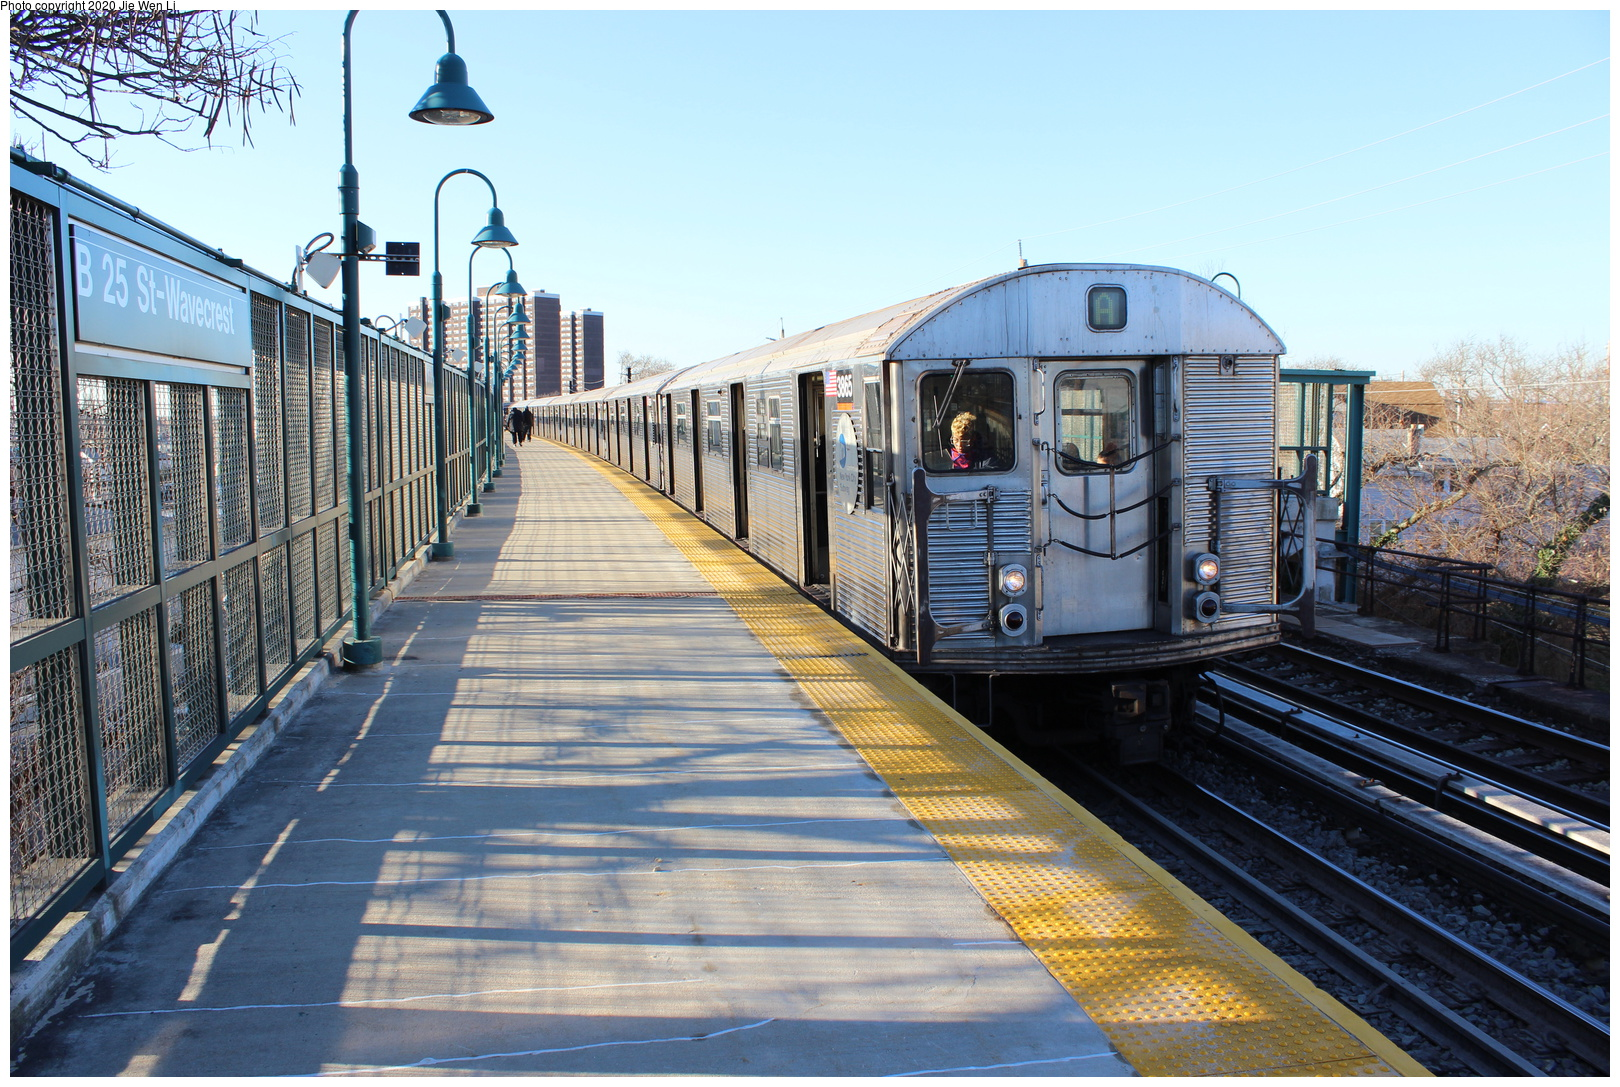 (226k, 1044x961)<br><b>Country:</b> United States<br><b>City:</b> New York<br><b>System:</b> New York City Transit<br><b>Line:</b> IND Fulton Street Line<br><b>Location:</b> 111th Street/Greenwood Avenue <br><b>Car:</b> BMT C  <br><b>Photo by:</b> Joel Shanus<br><b>Viewed (this week/total):</b> 1 / 1423